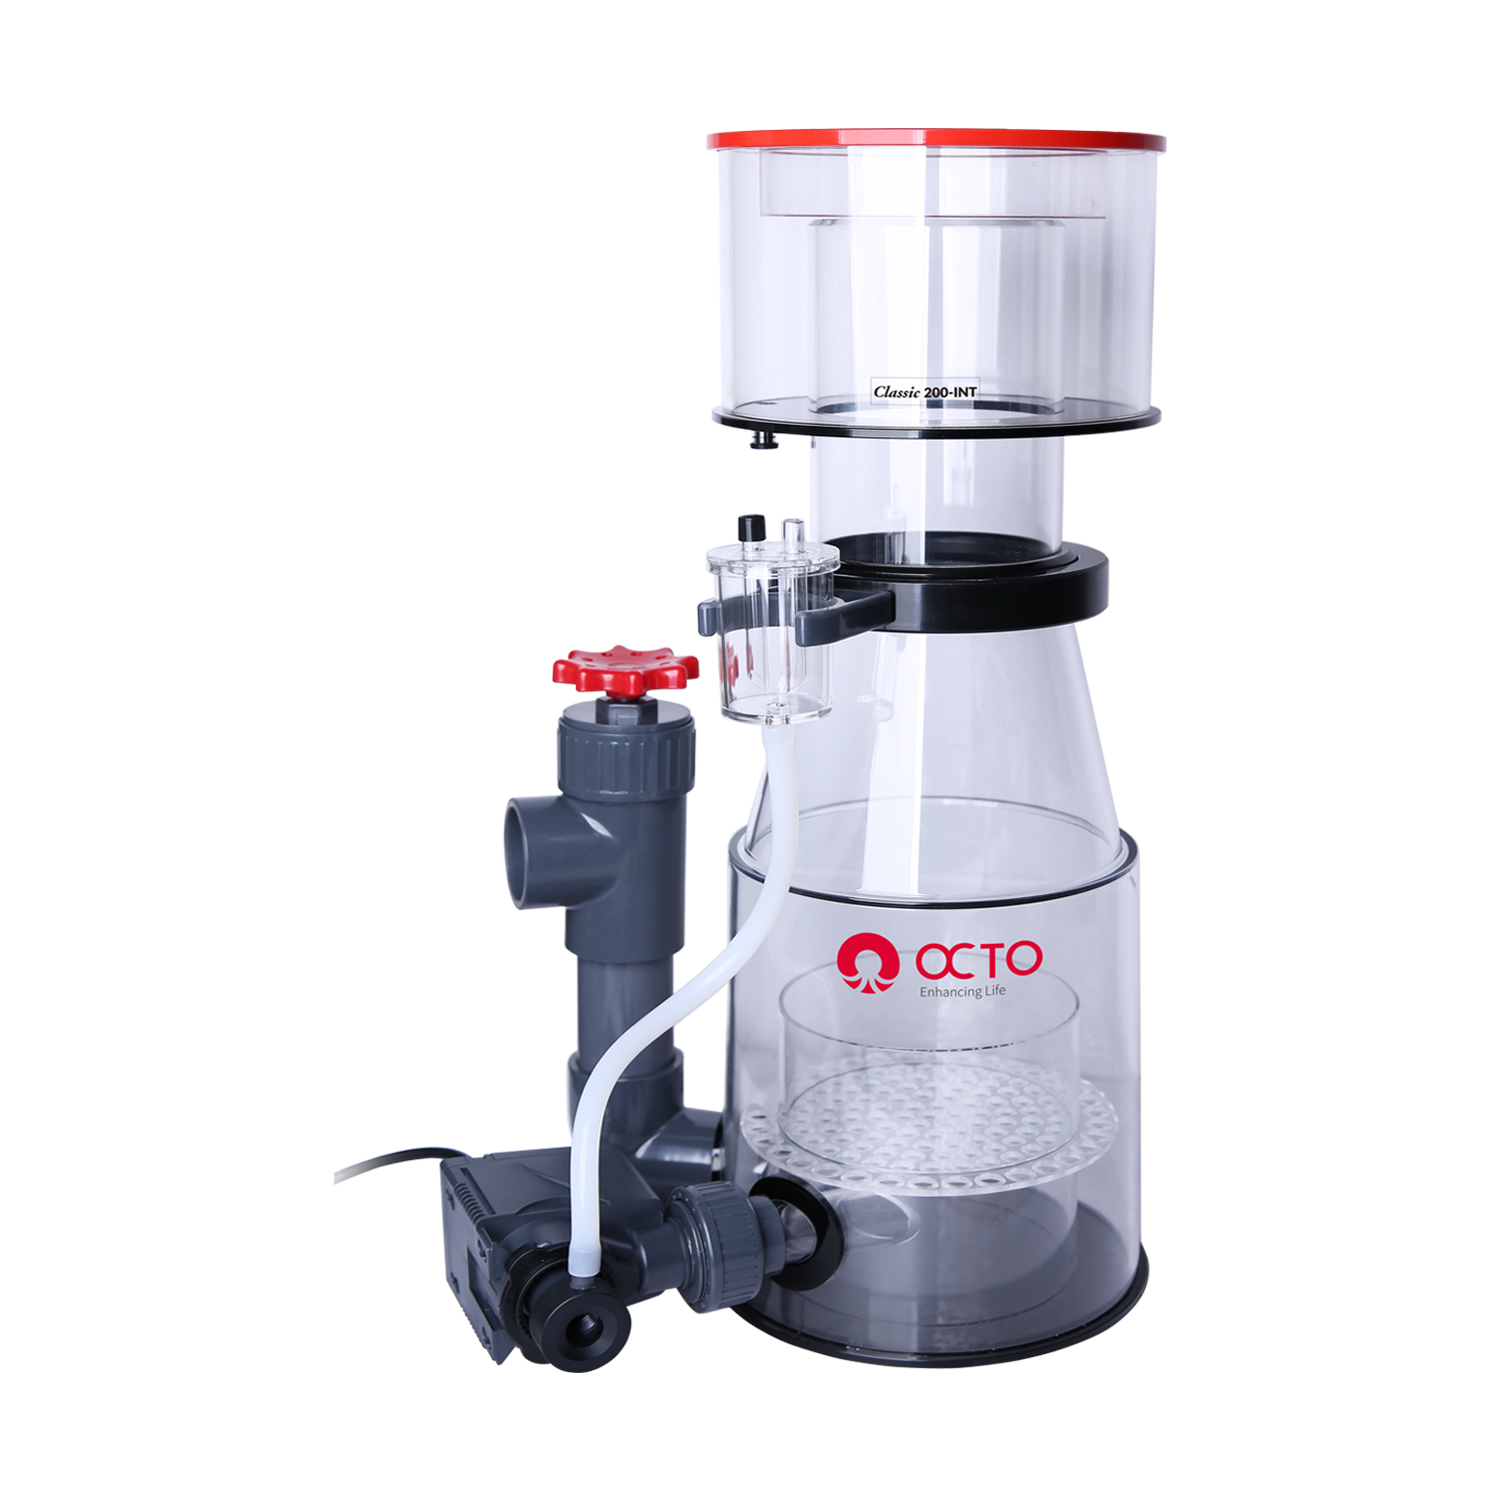 Reef Octopus Protein Skimmer Classic 200-INT